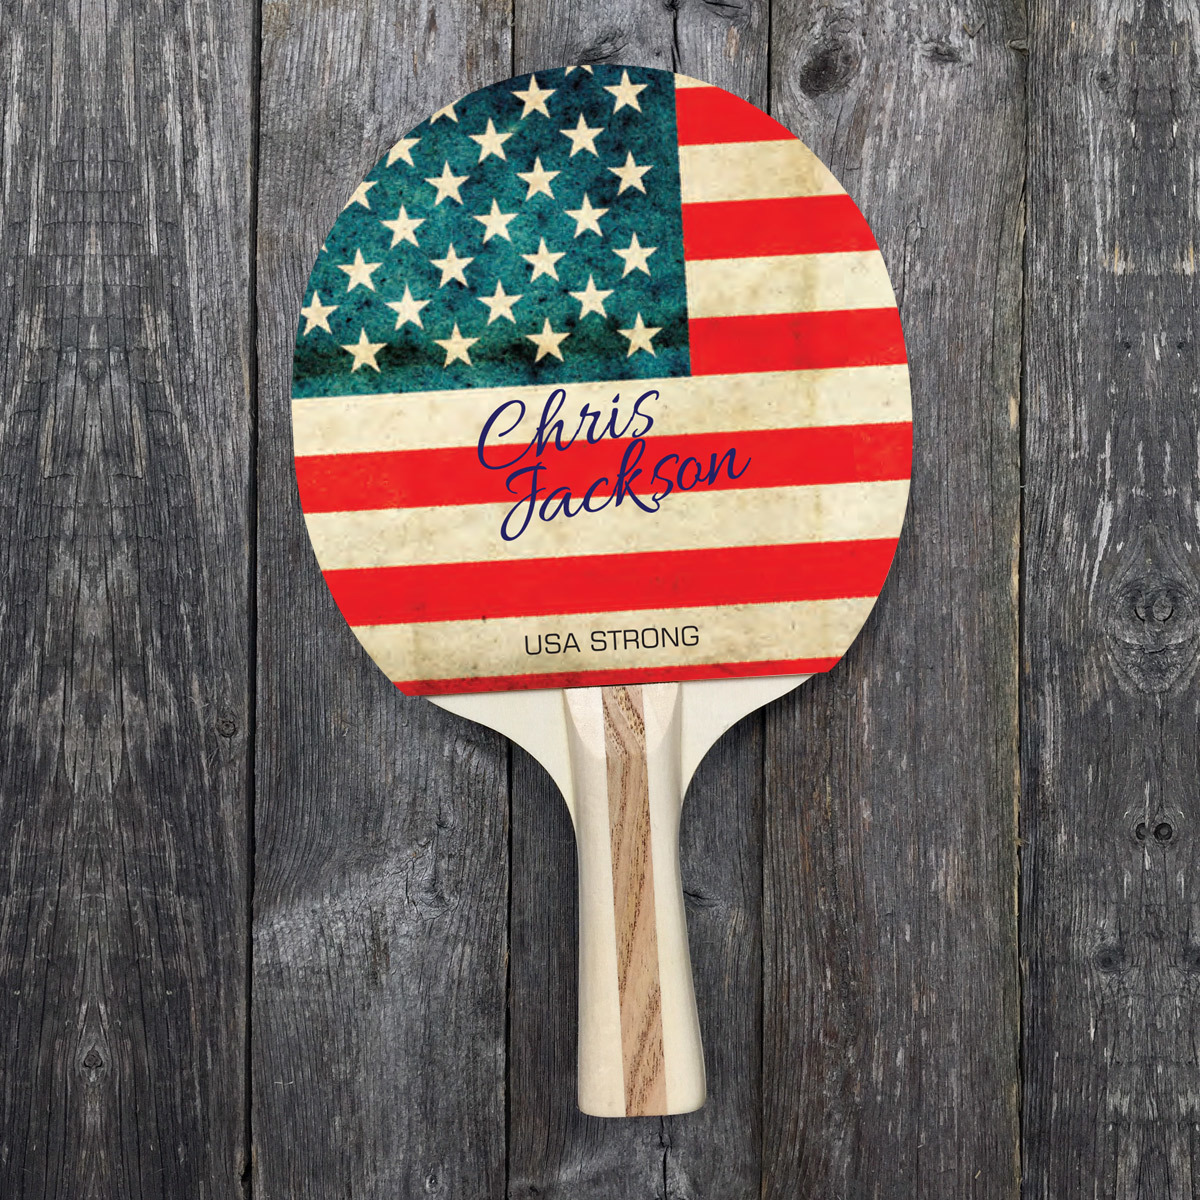 Custom Ping Pong Paddles